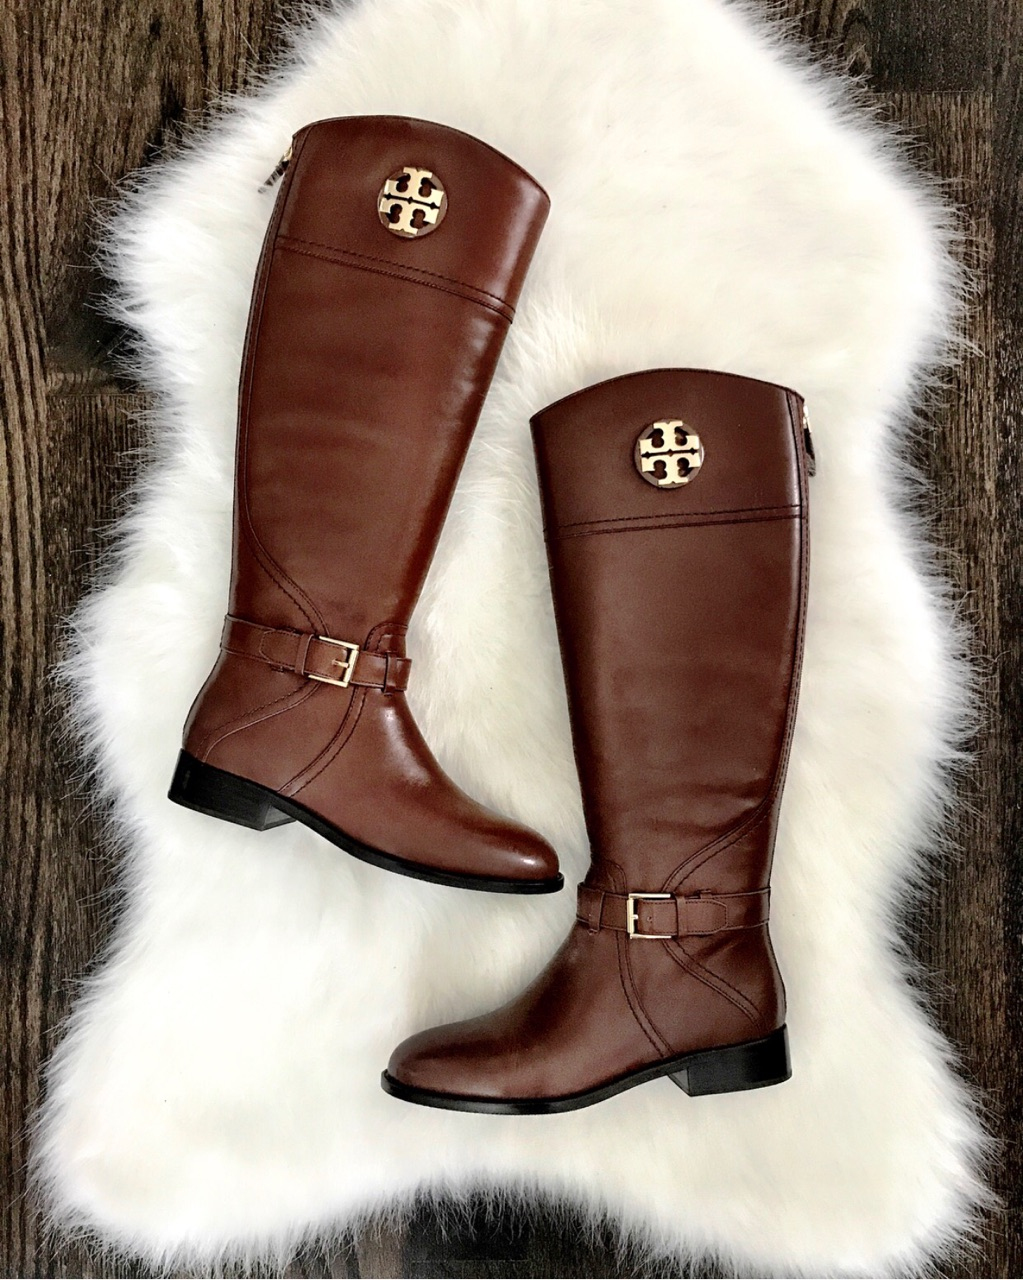 Free shipping on Tory Burch shoes for women at ticketfinder.ga Browse for boots, pumps, flats, sandals and more, plus check out customer reviews.